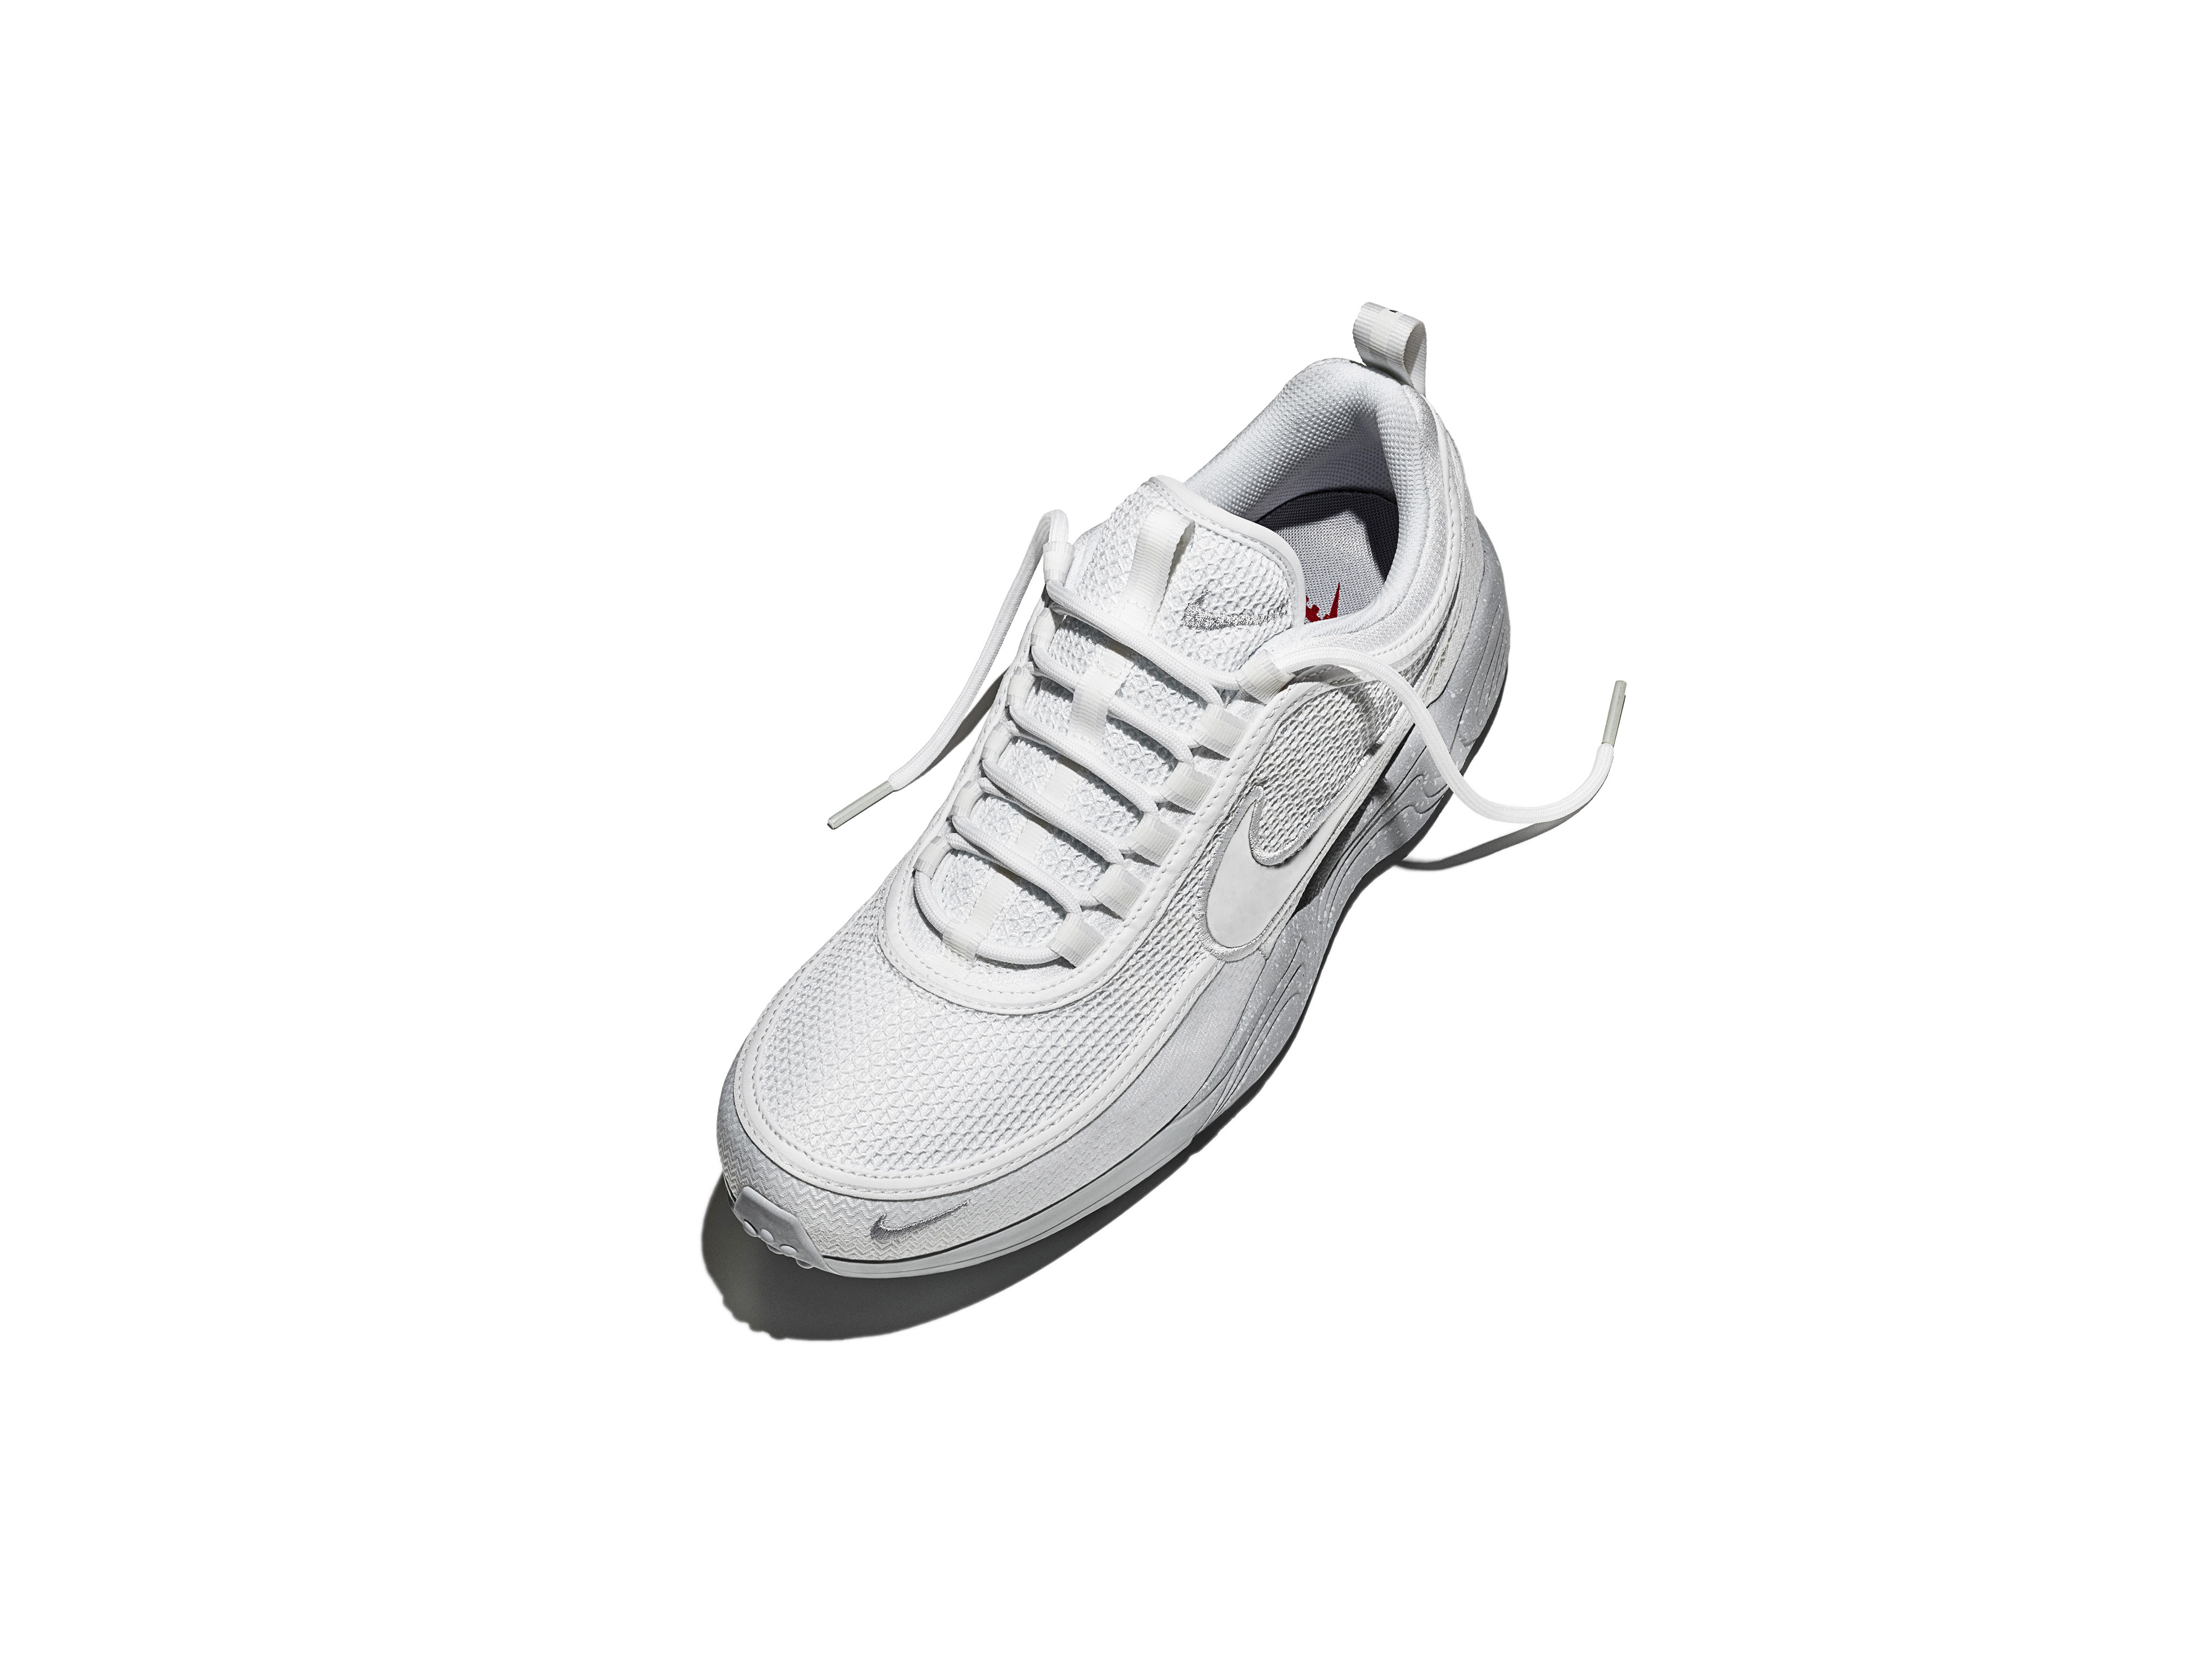 Nouveaux produits 830a7 2bf6a NikeLab Has Remastered the Air Zoom Spiridon - WearTesters